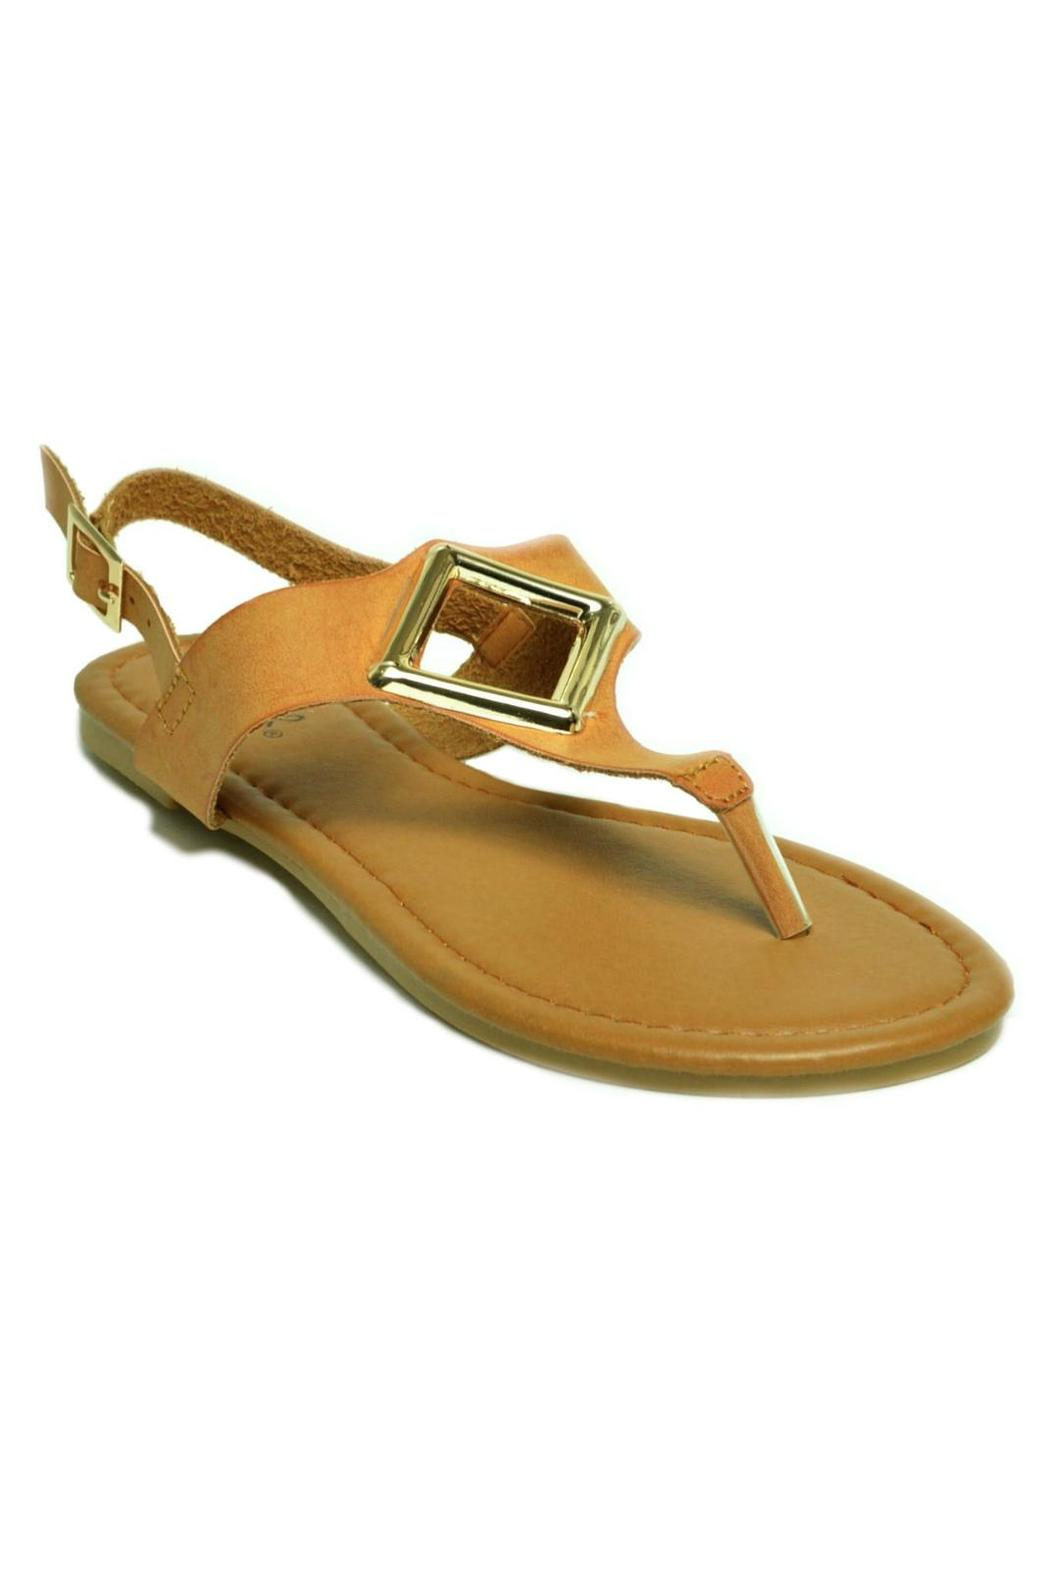 Qupid T-Strap, Metallic Ornament-Sandal - Side Cropped Image